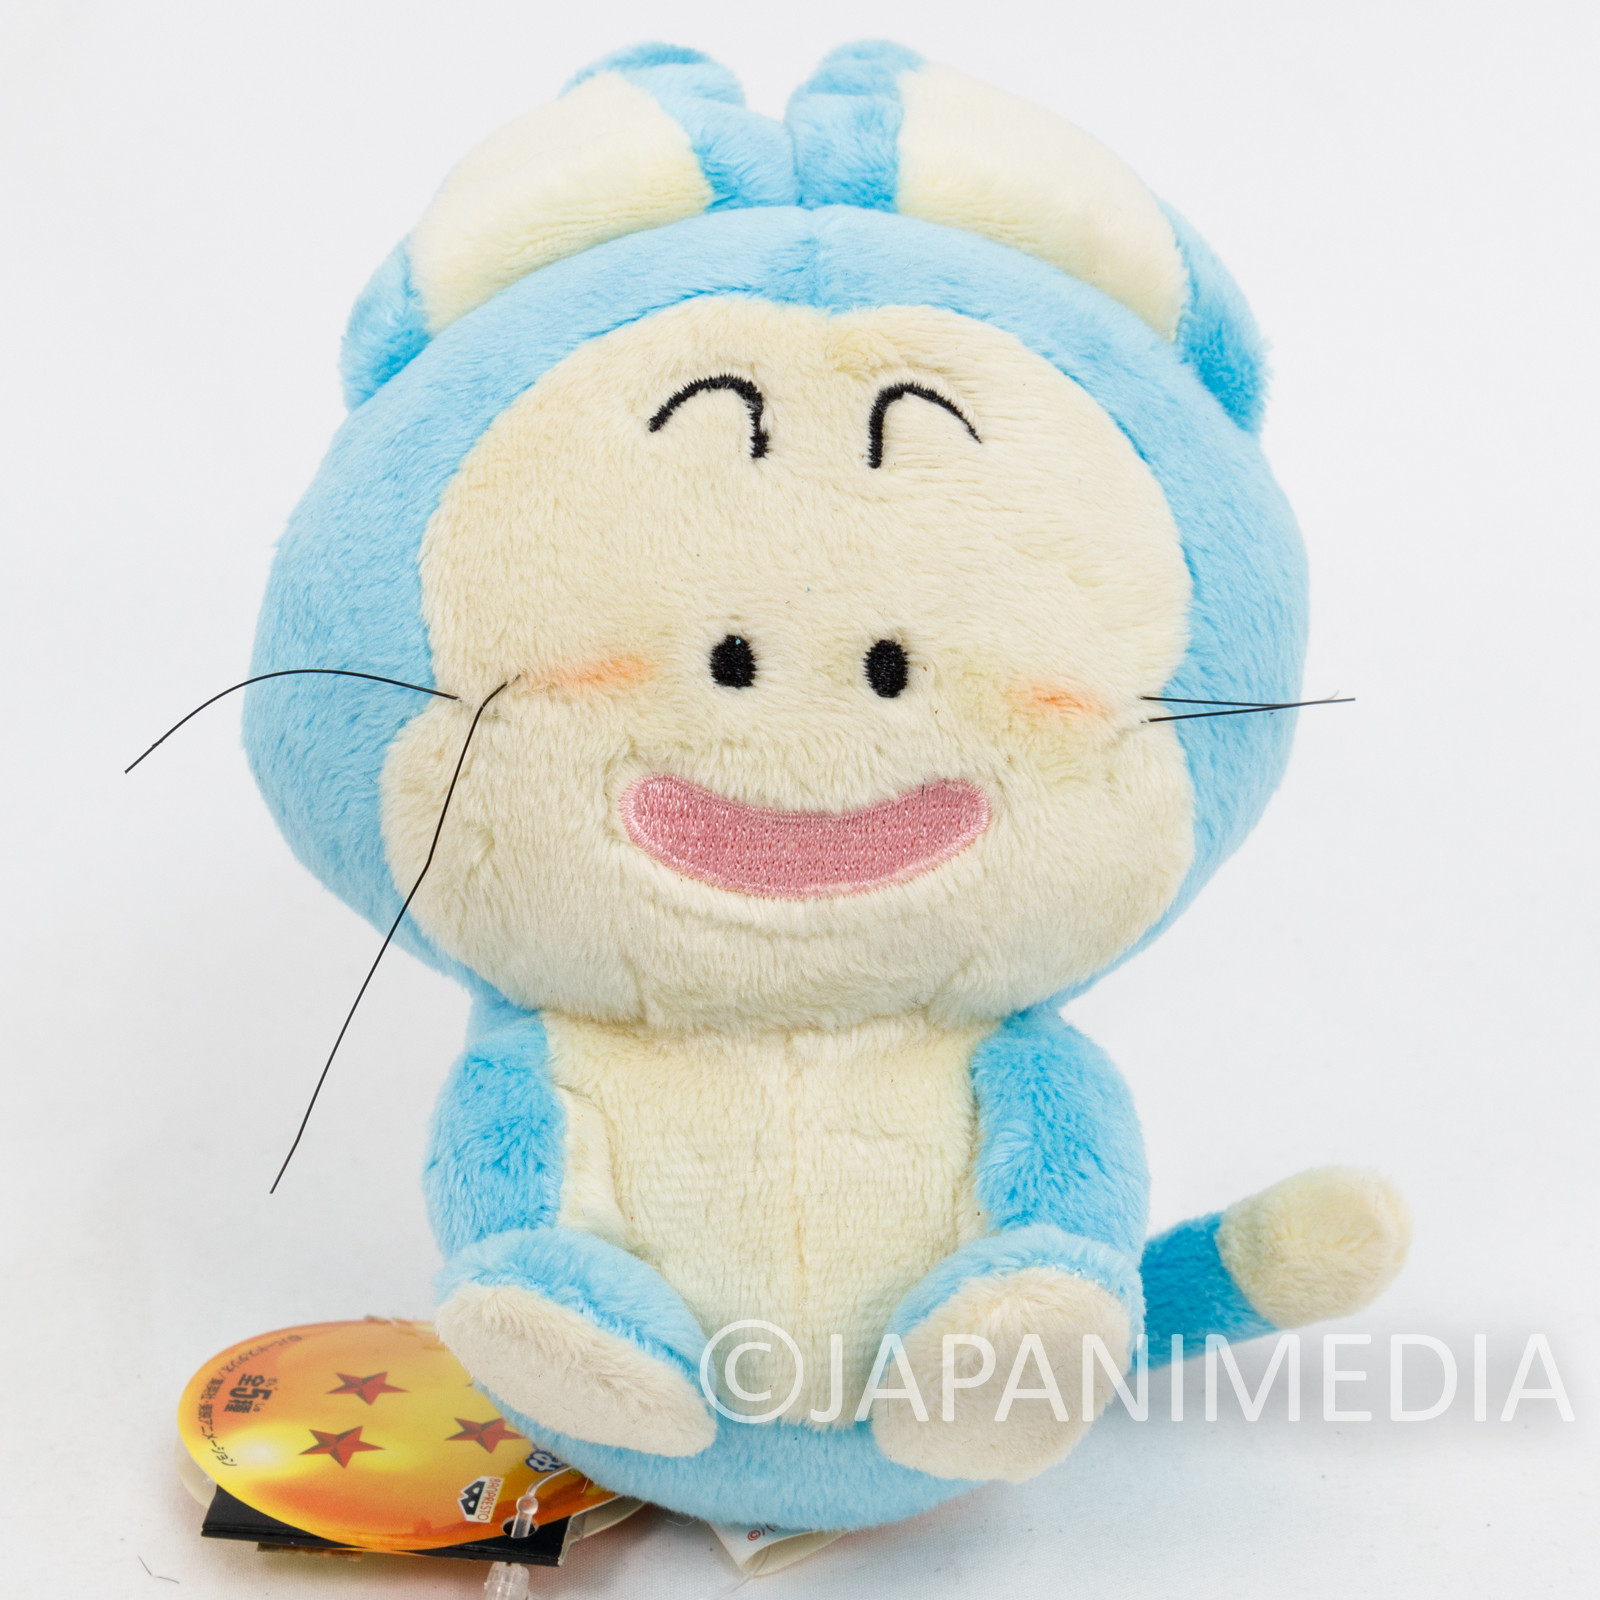 "Dragon Ball Puar Mini Plush Doll 6"" JAPAN ANIME MANGA"